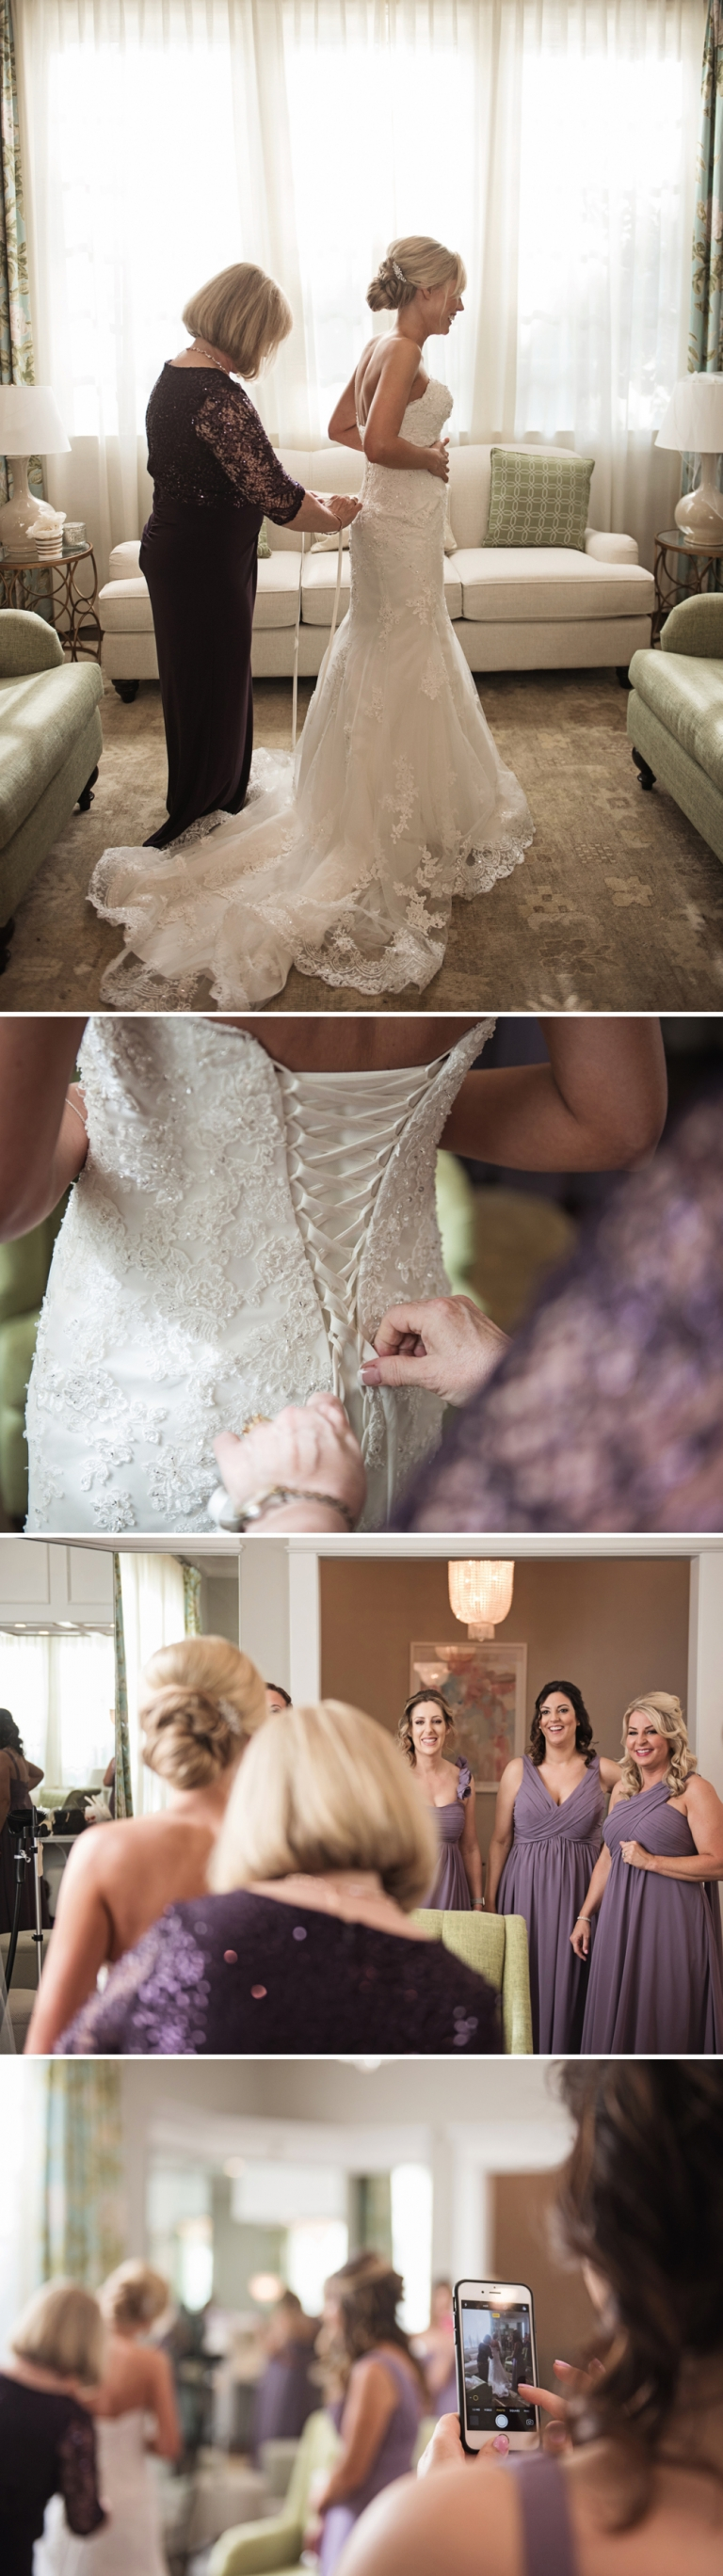 Milestone Mansion Wedding in Aubrey